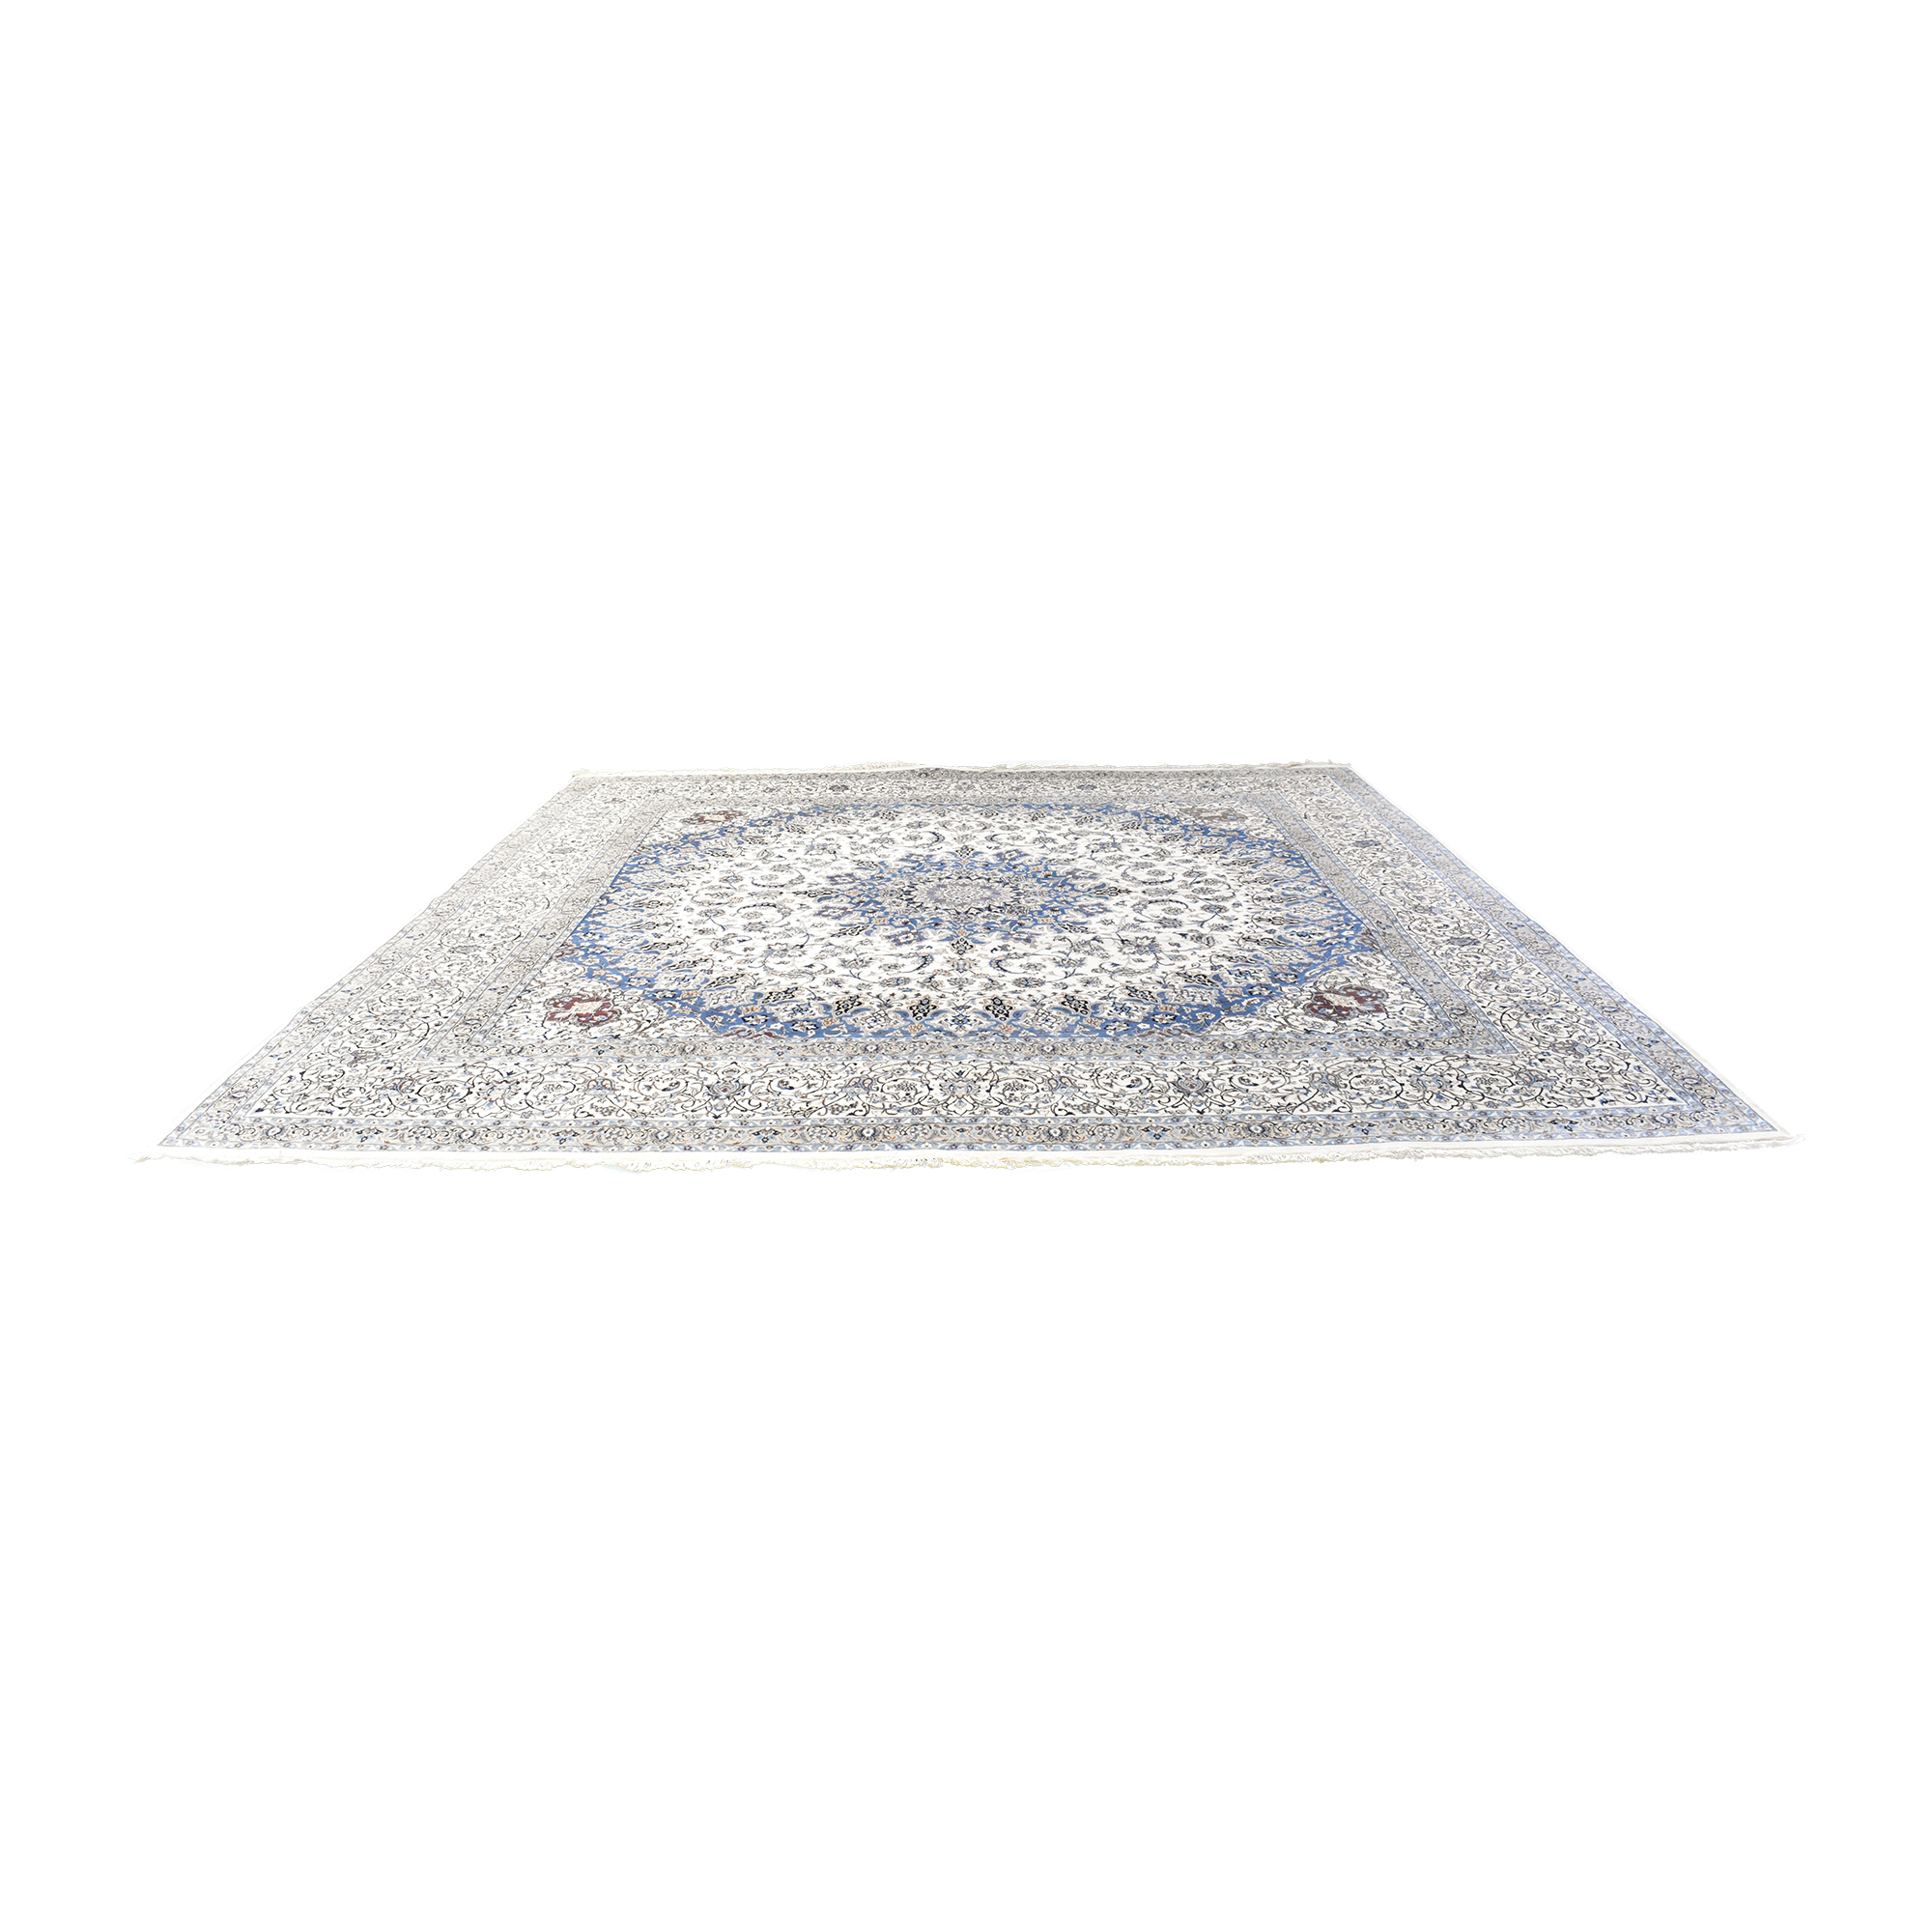 Traditional Patterned Area Rug / Decor